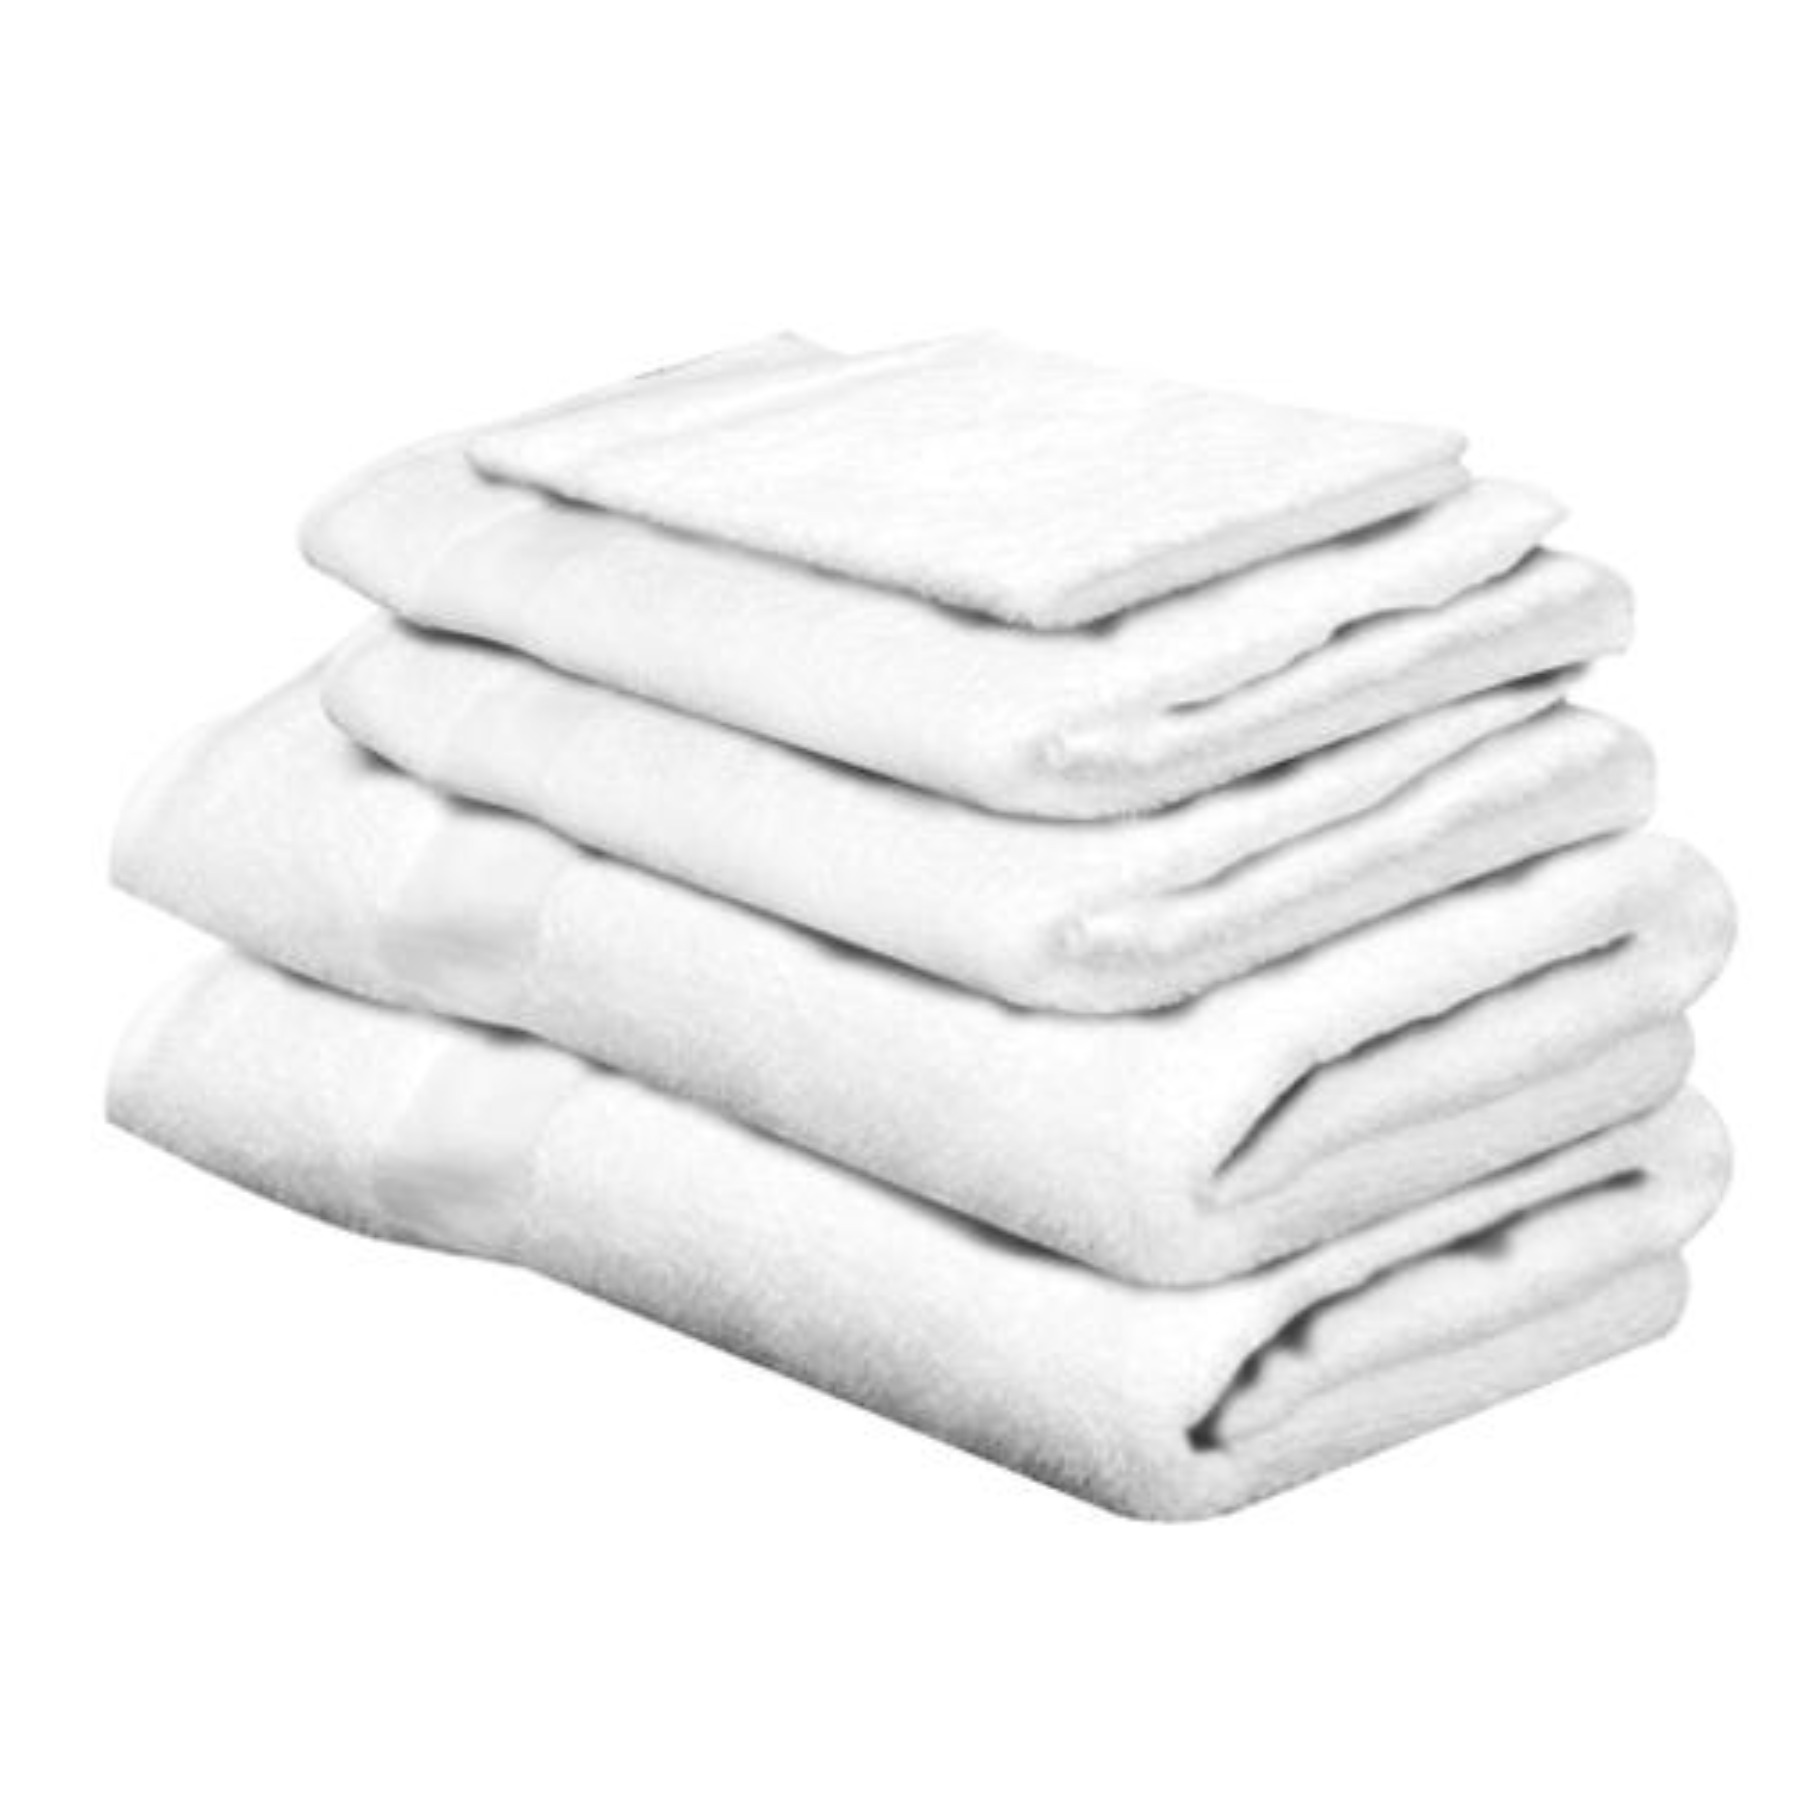 BATH TOWEL 25 IN X 50 IN WHITE, 12 PACK